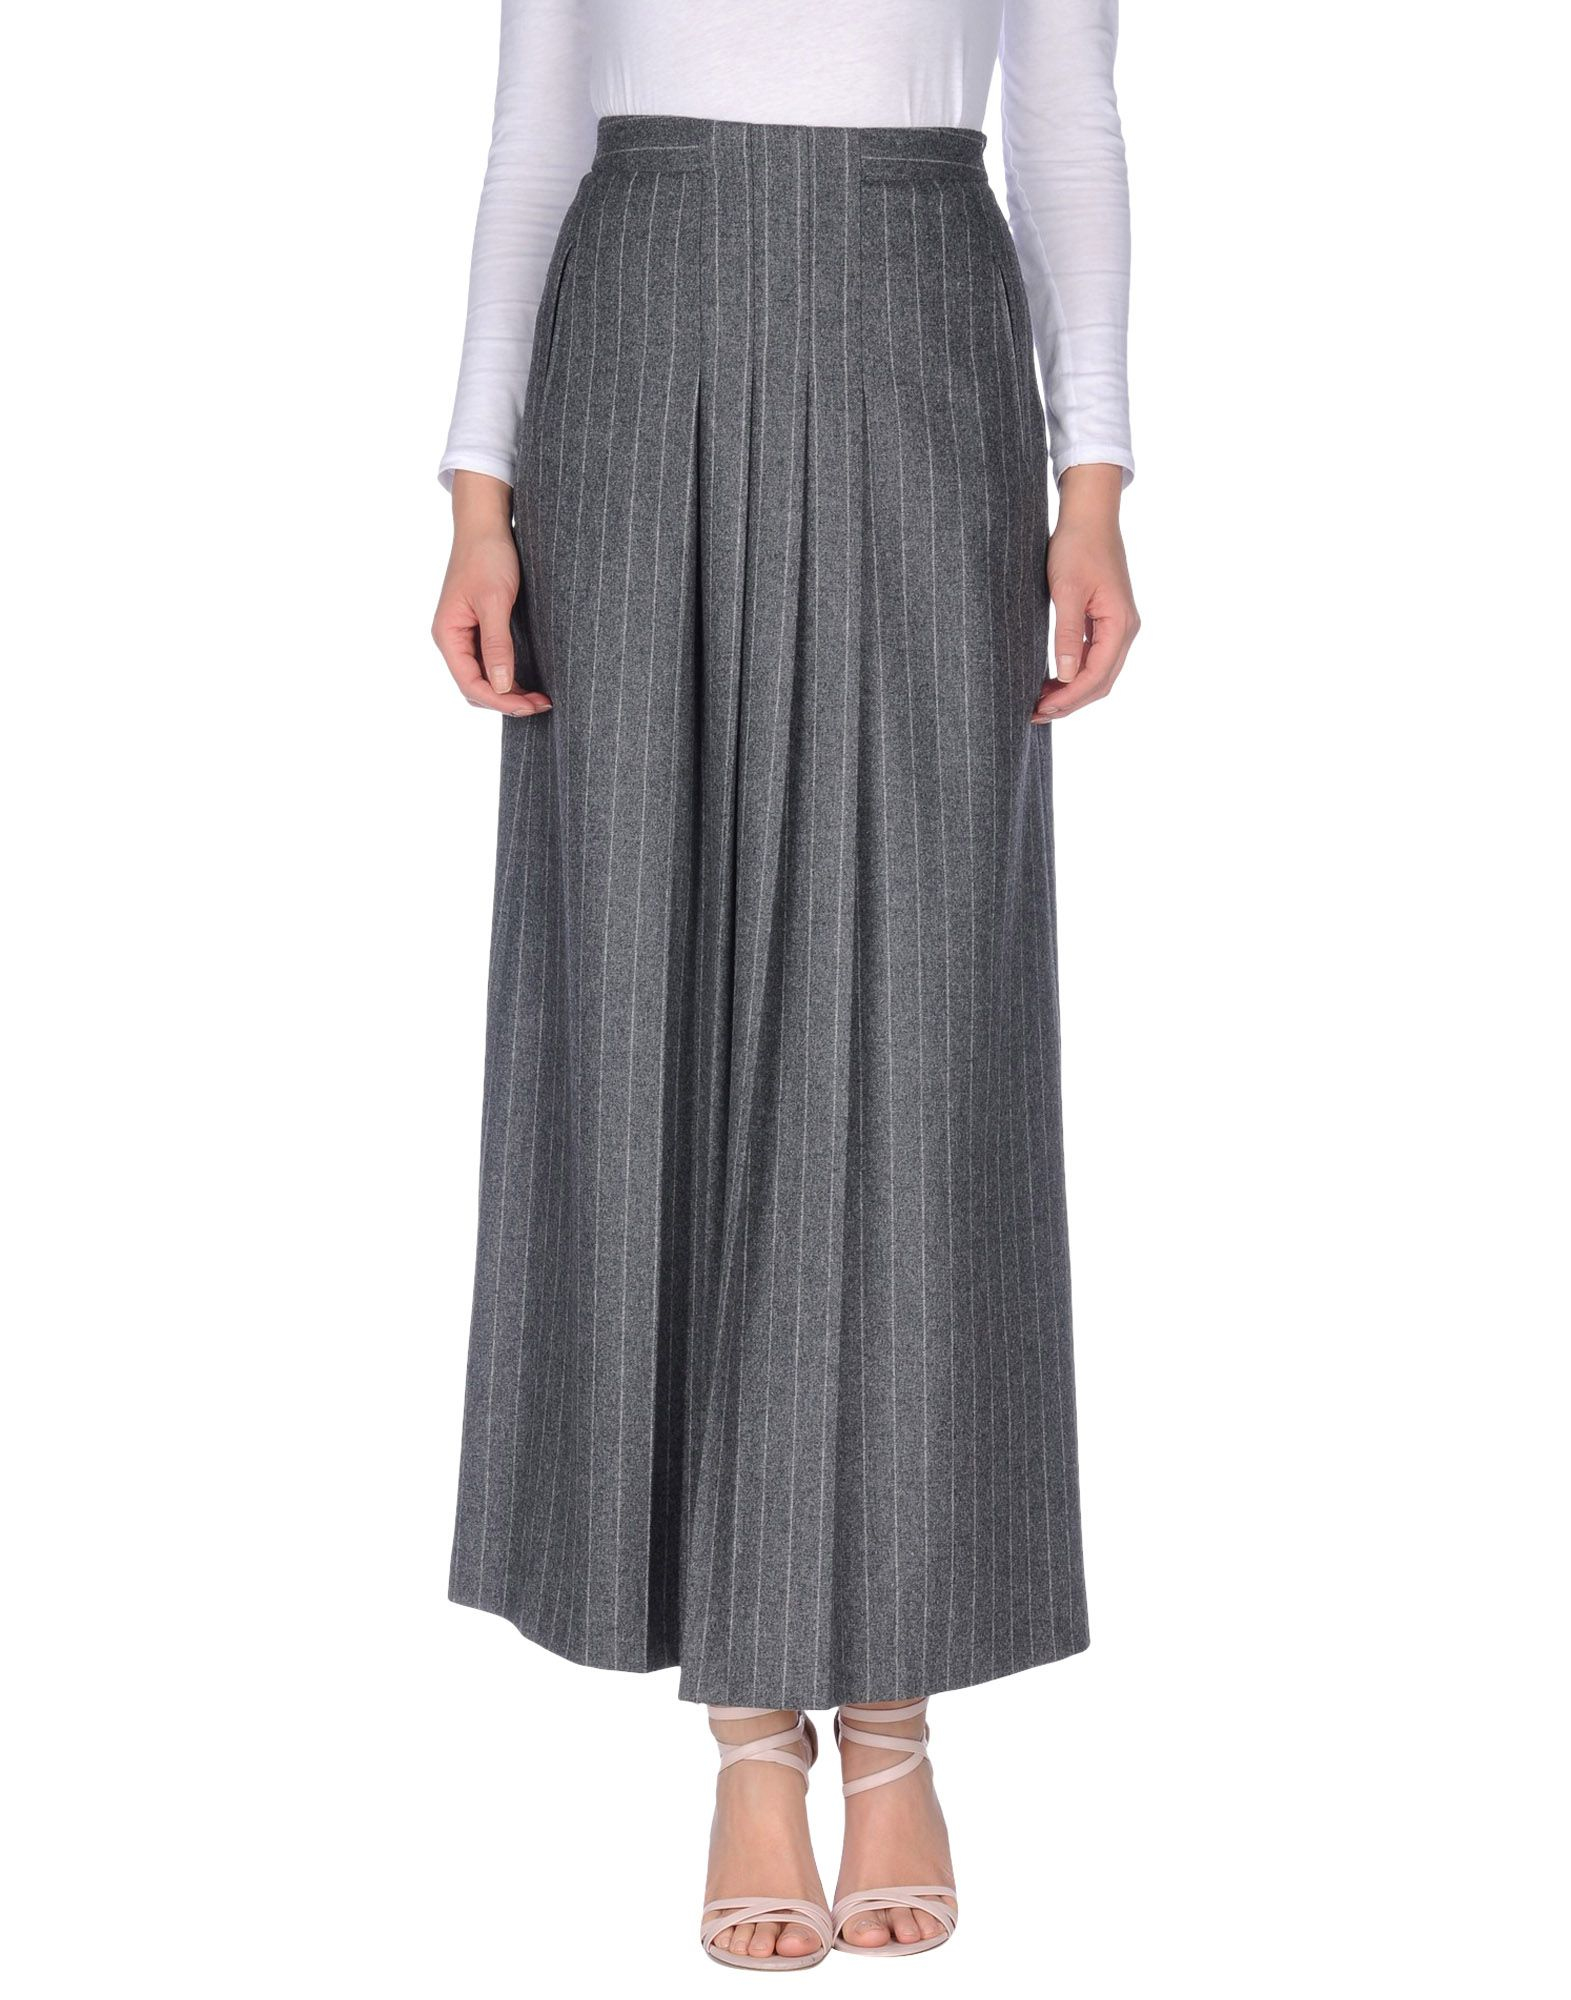 Shop eBay for great deals on Gray Long Skirts for Women. You'll find new or used products in Gray Long Skirts for Women on eBay. Free shipping on selected items.